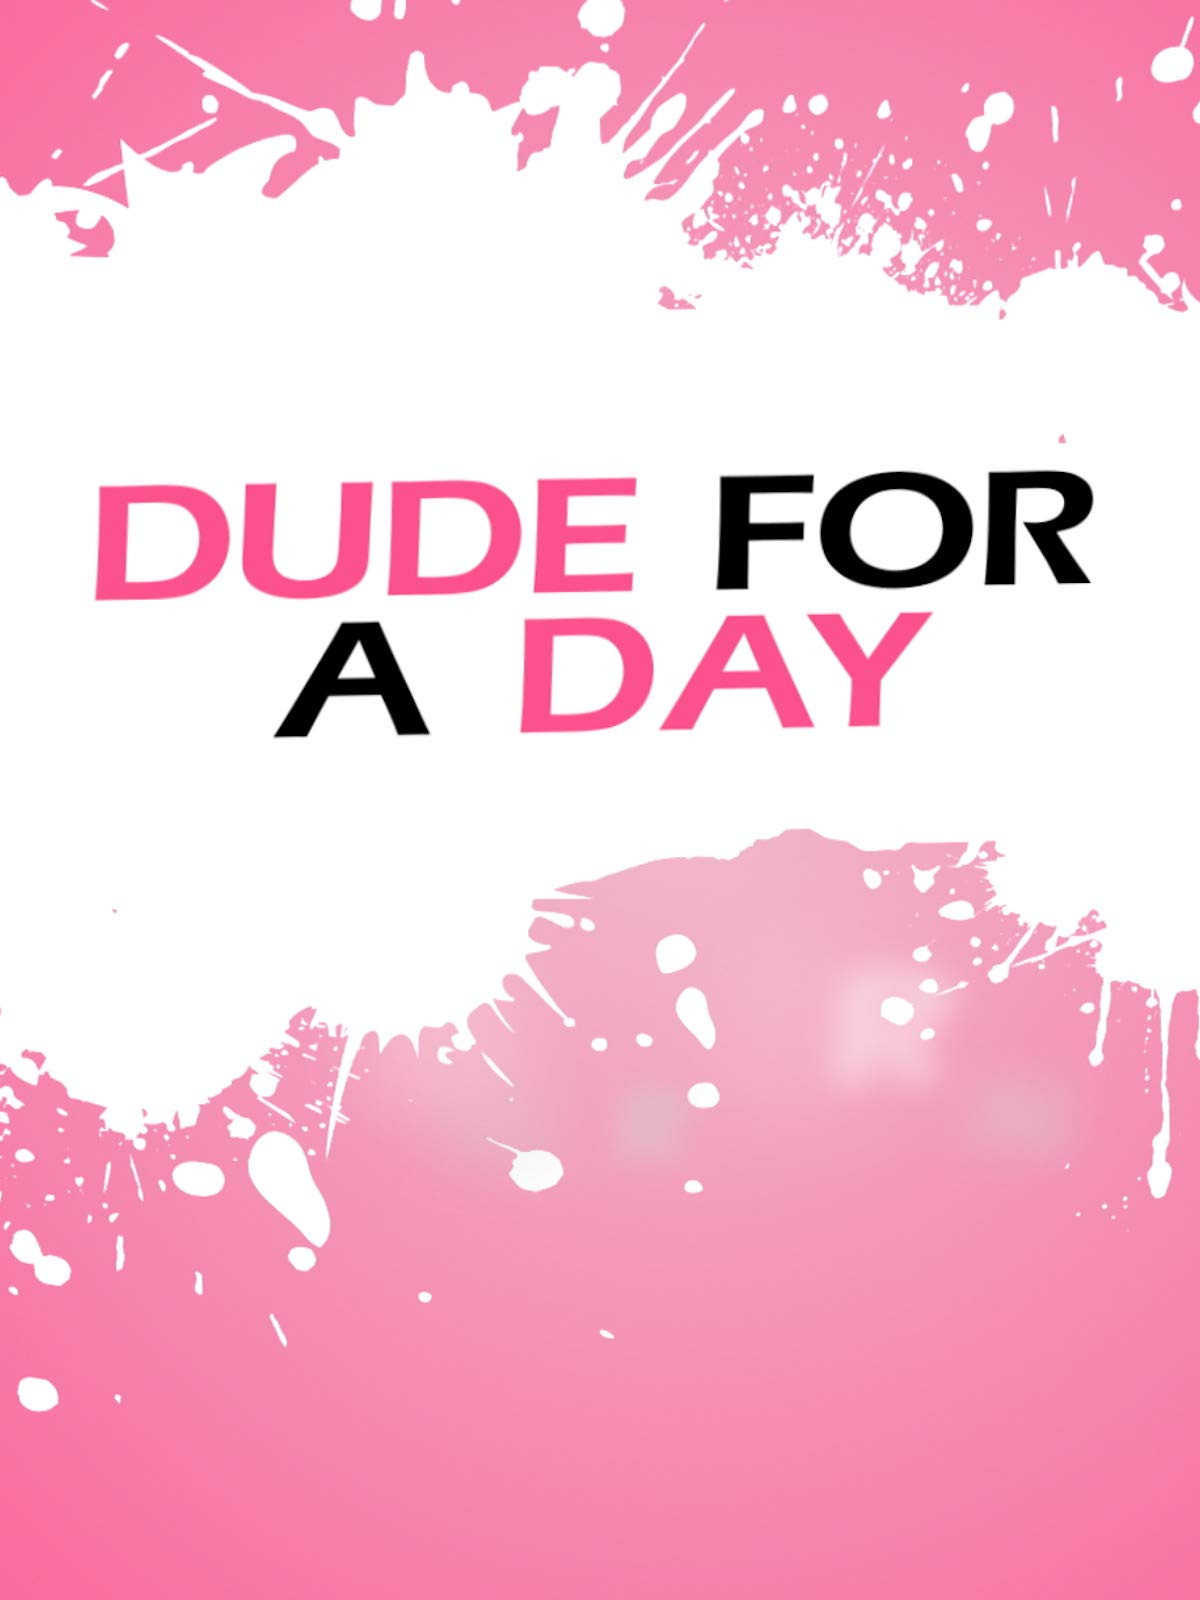 Dude For A Day